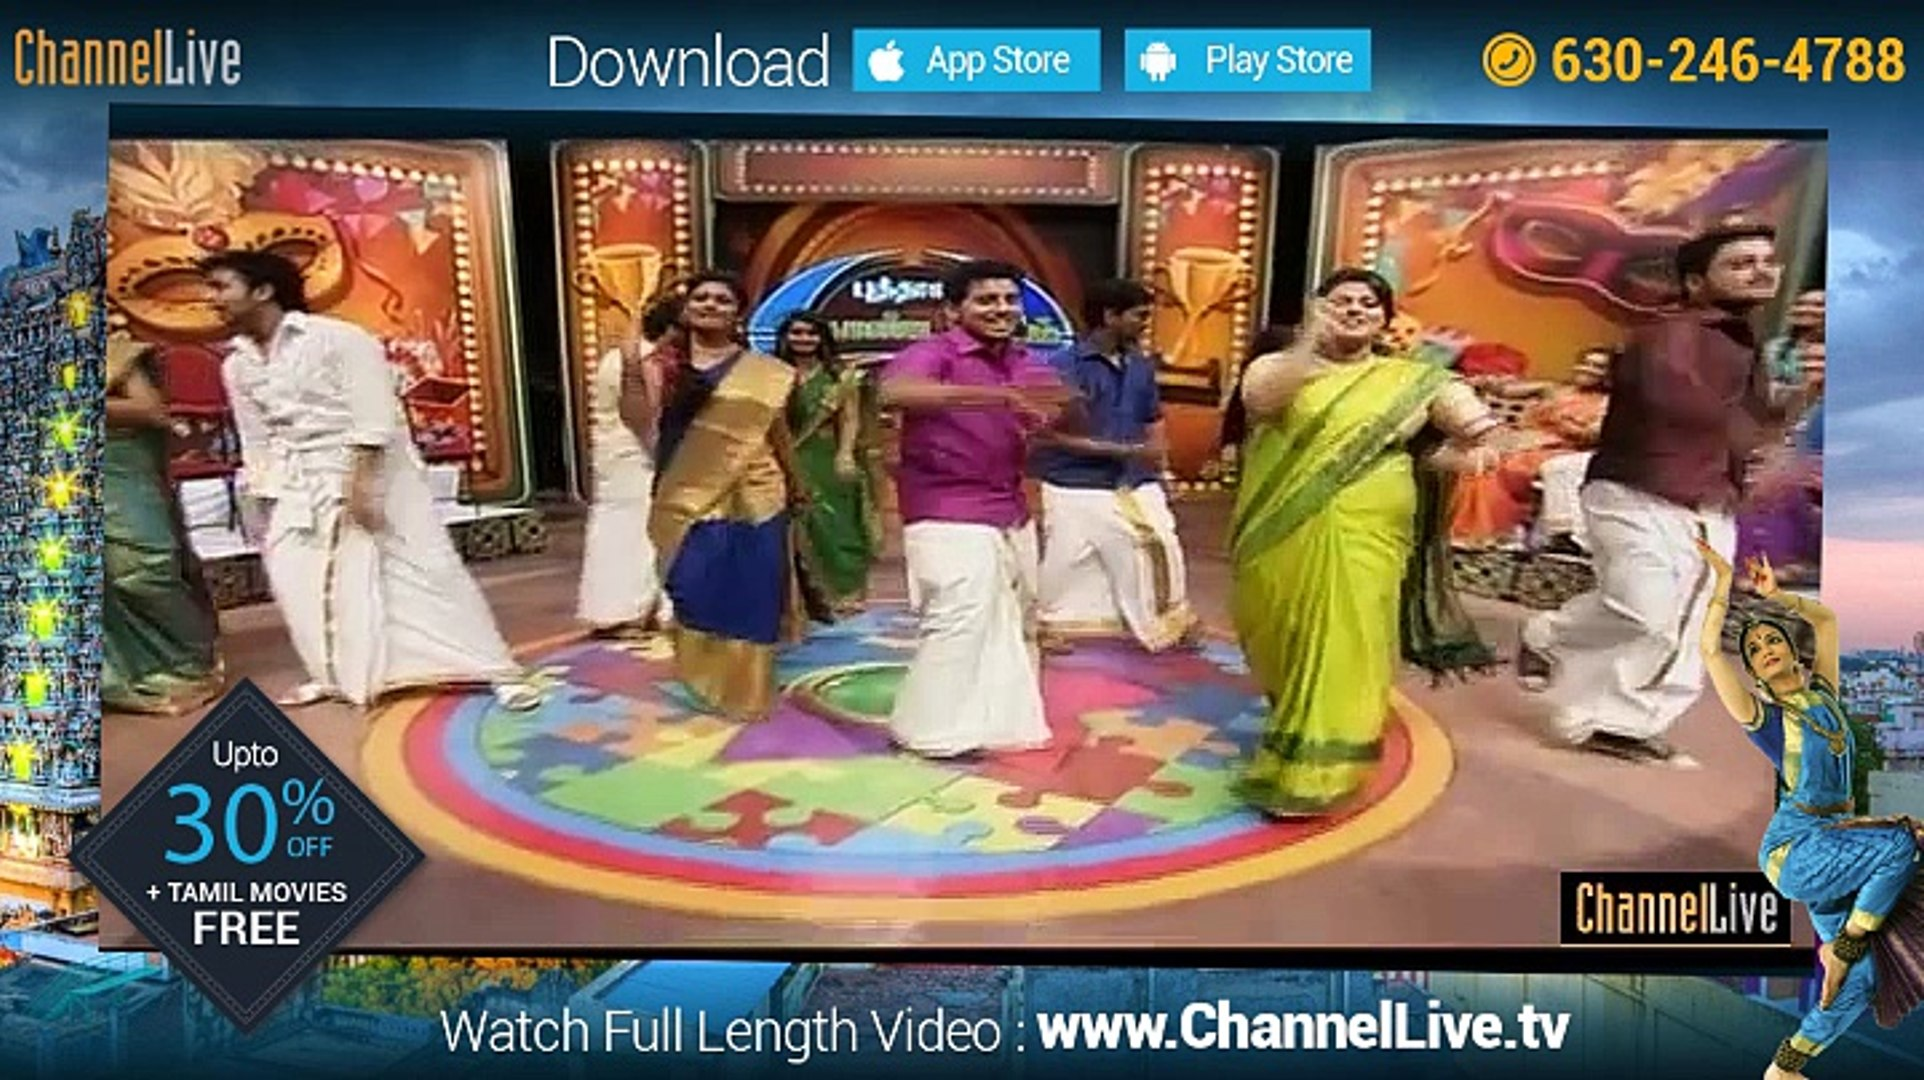 Jaya TV Tamil New year specail programs on ChannelLive TV!